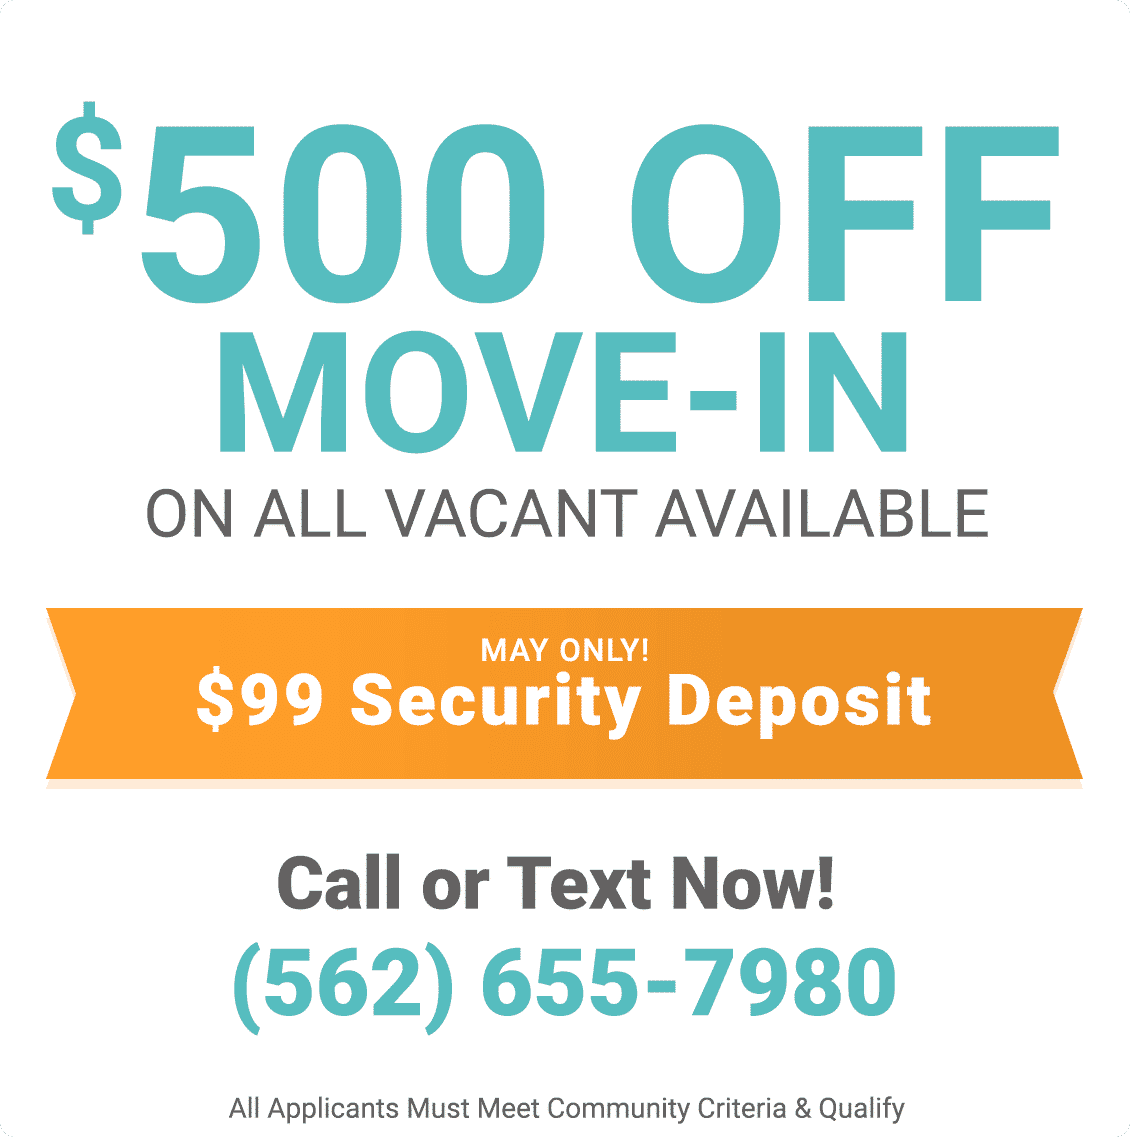 $500 off move-in on all vacant available